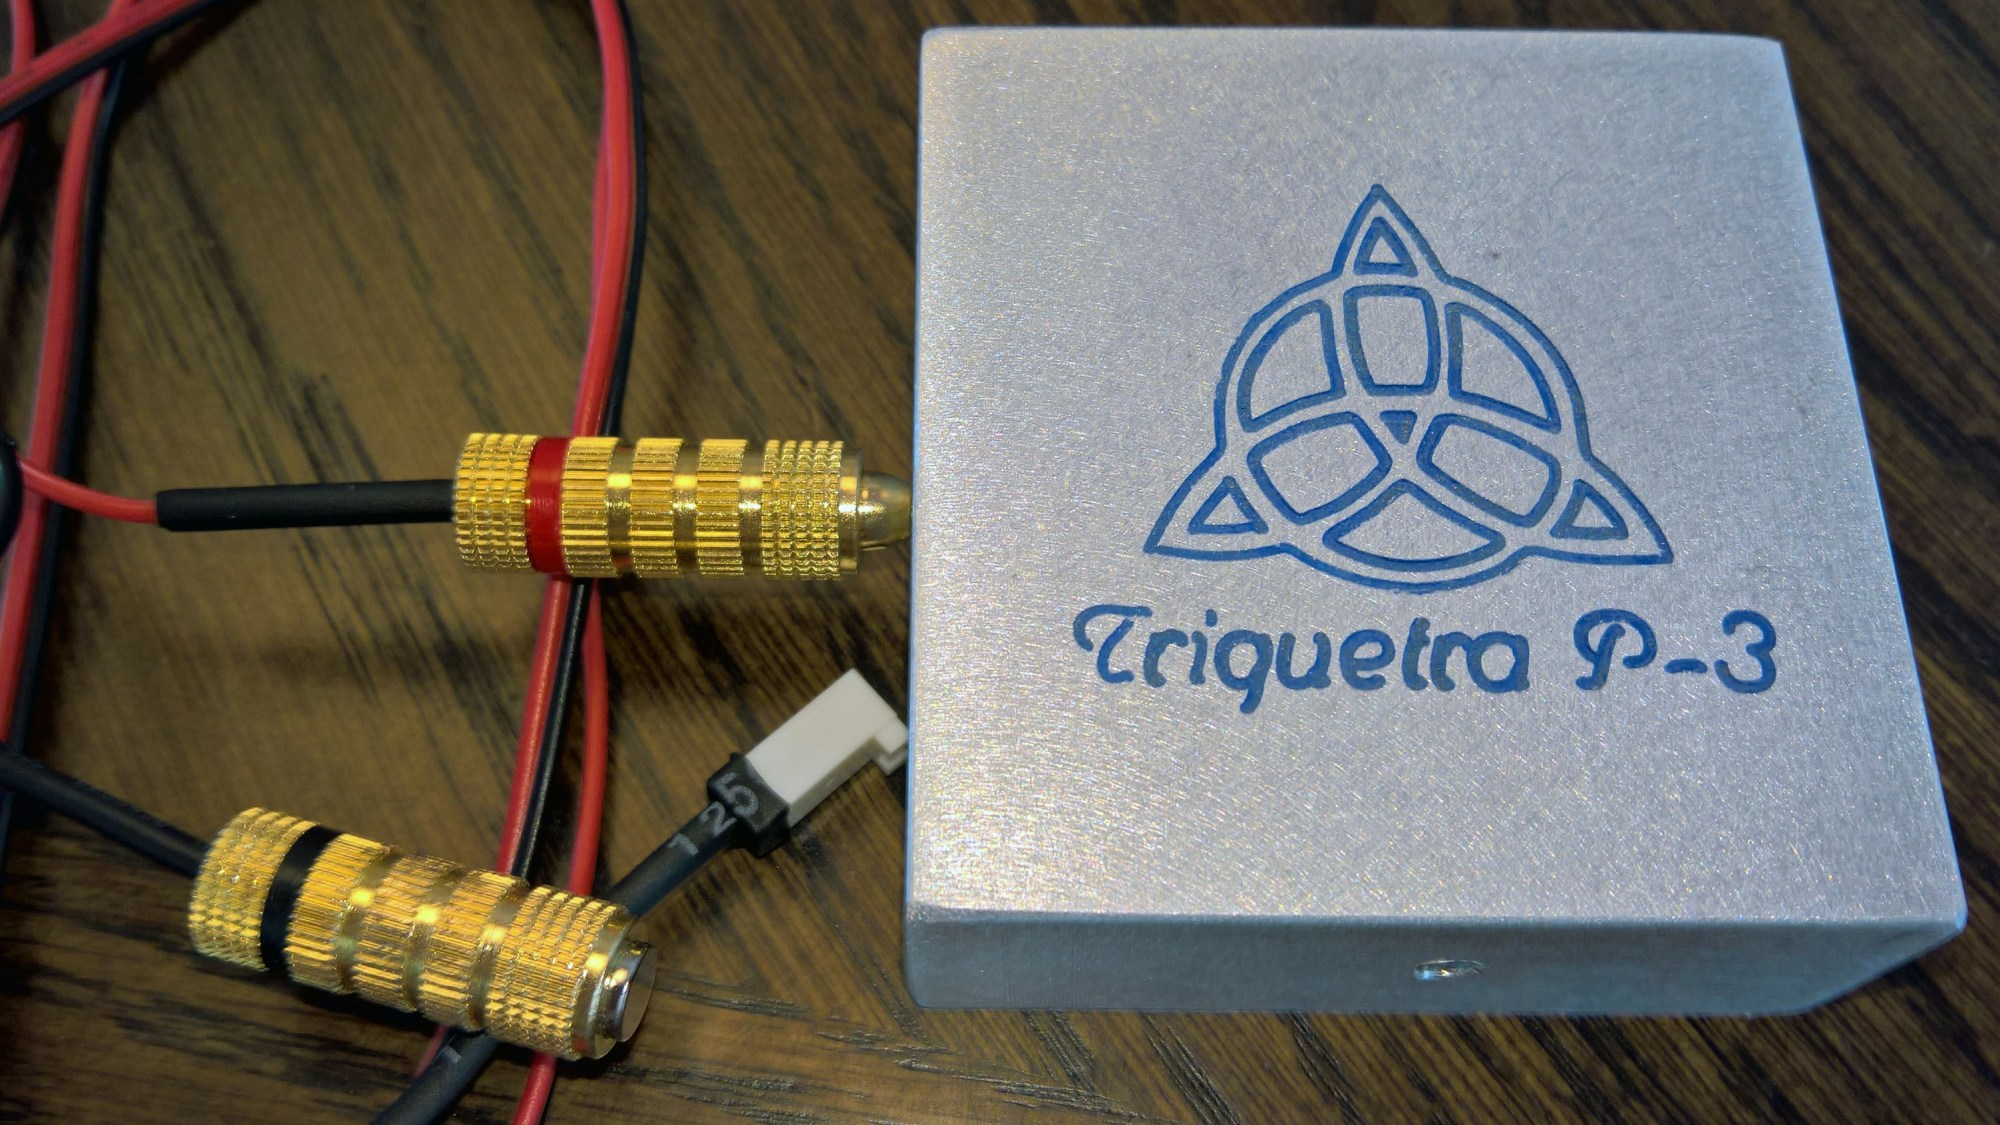 hight resolution of triquetra 3 axis touch plate wired for shapeoko finished jpg3006 1691 800 kb